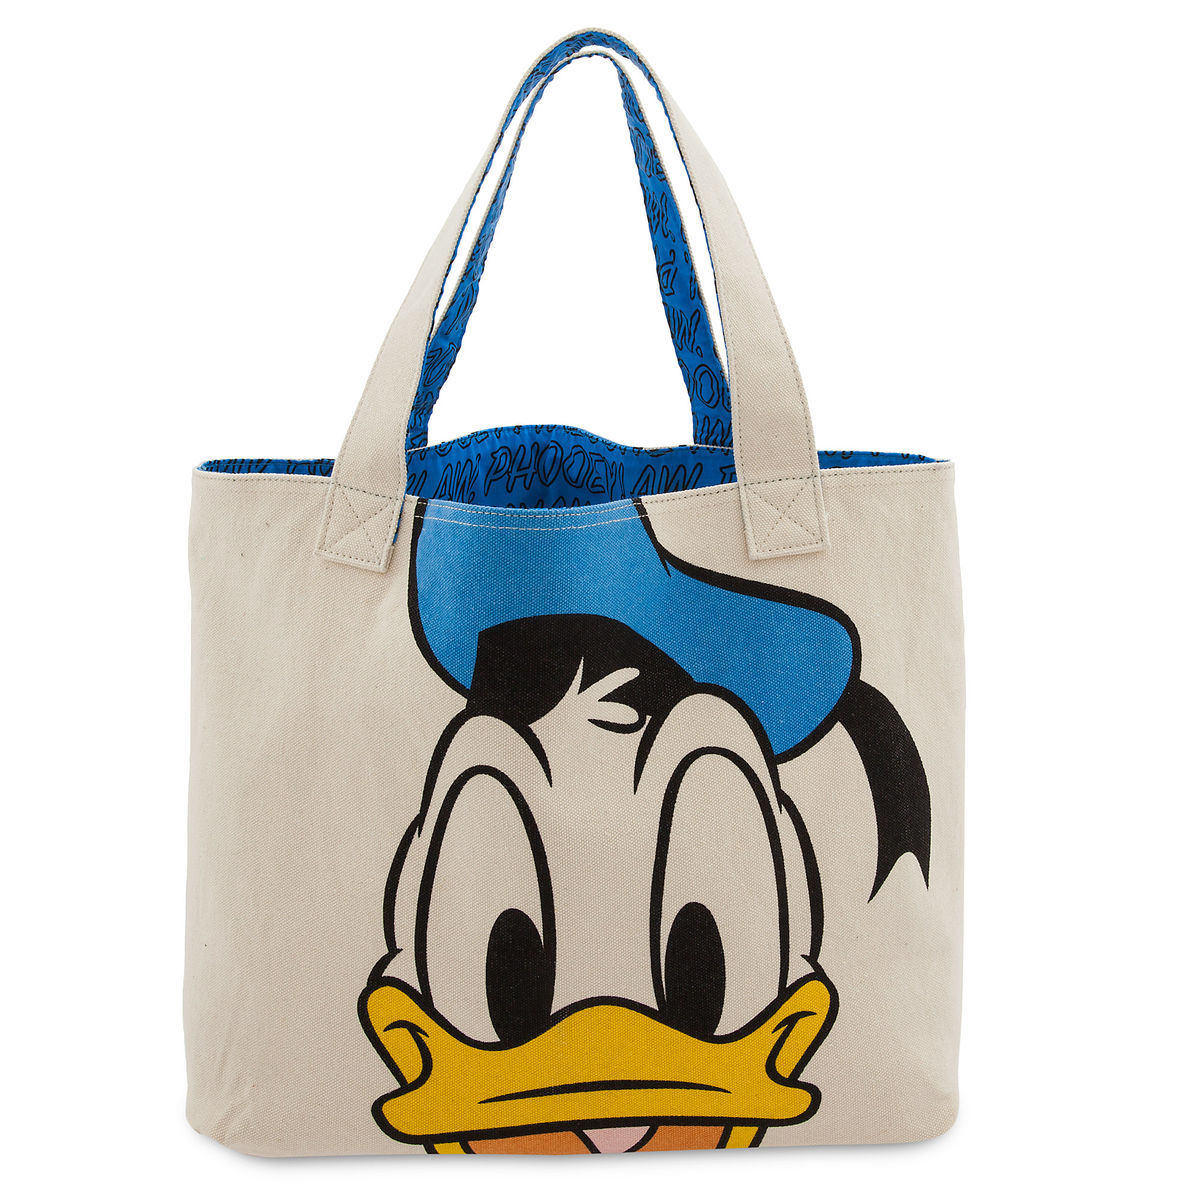 Disney Canvas Tote Bag - Donald Duck